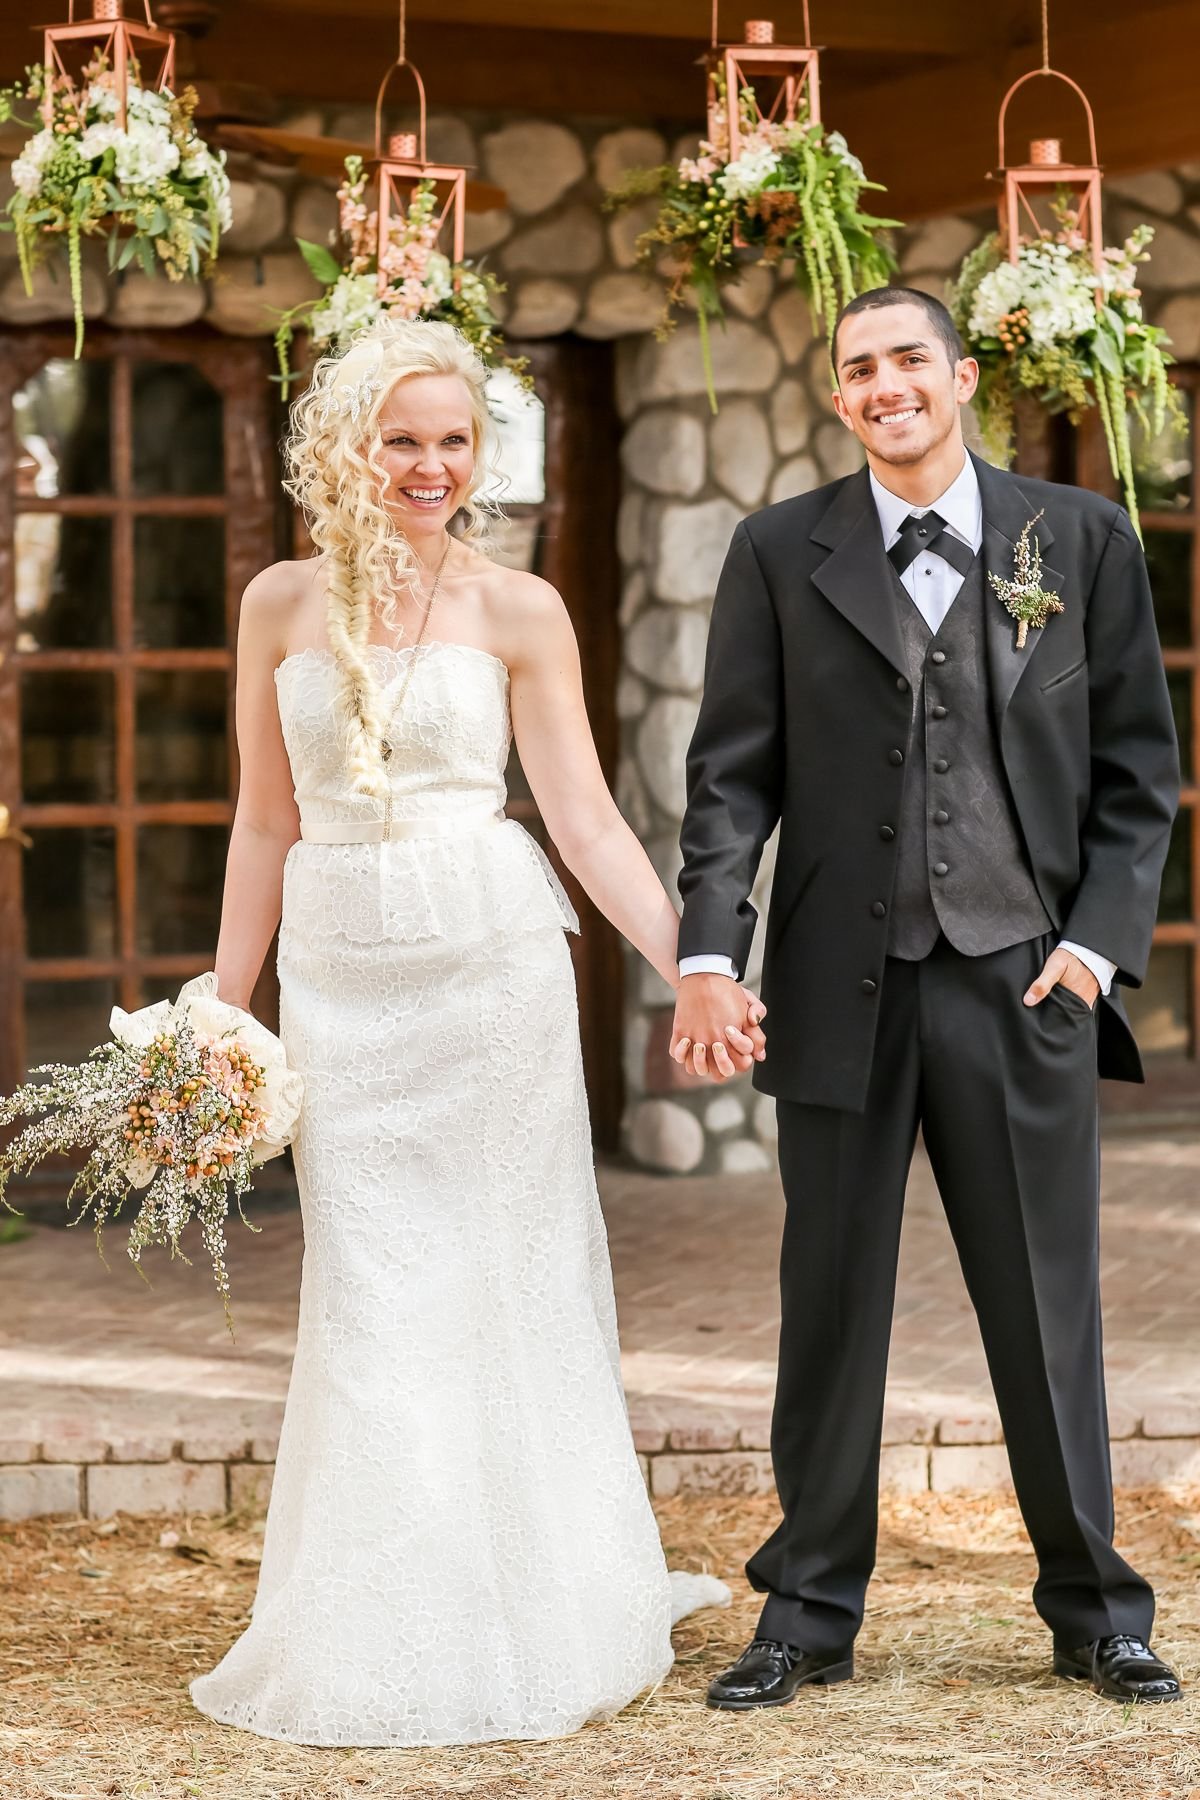 Pretty western wedding inspiration at legends ranch from ann and kam